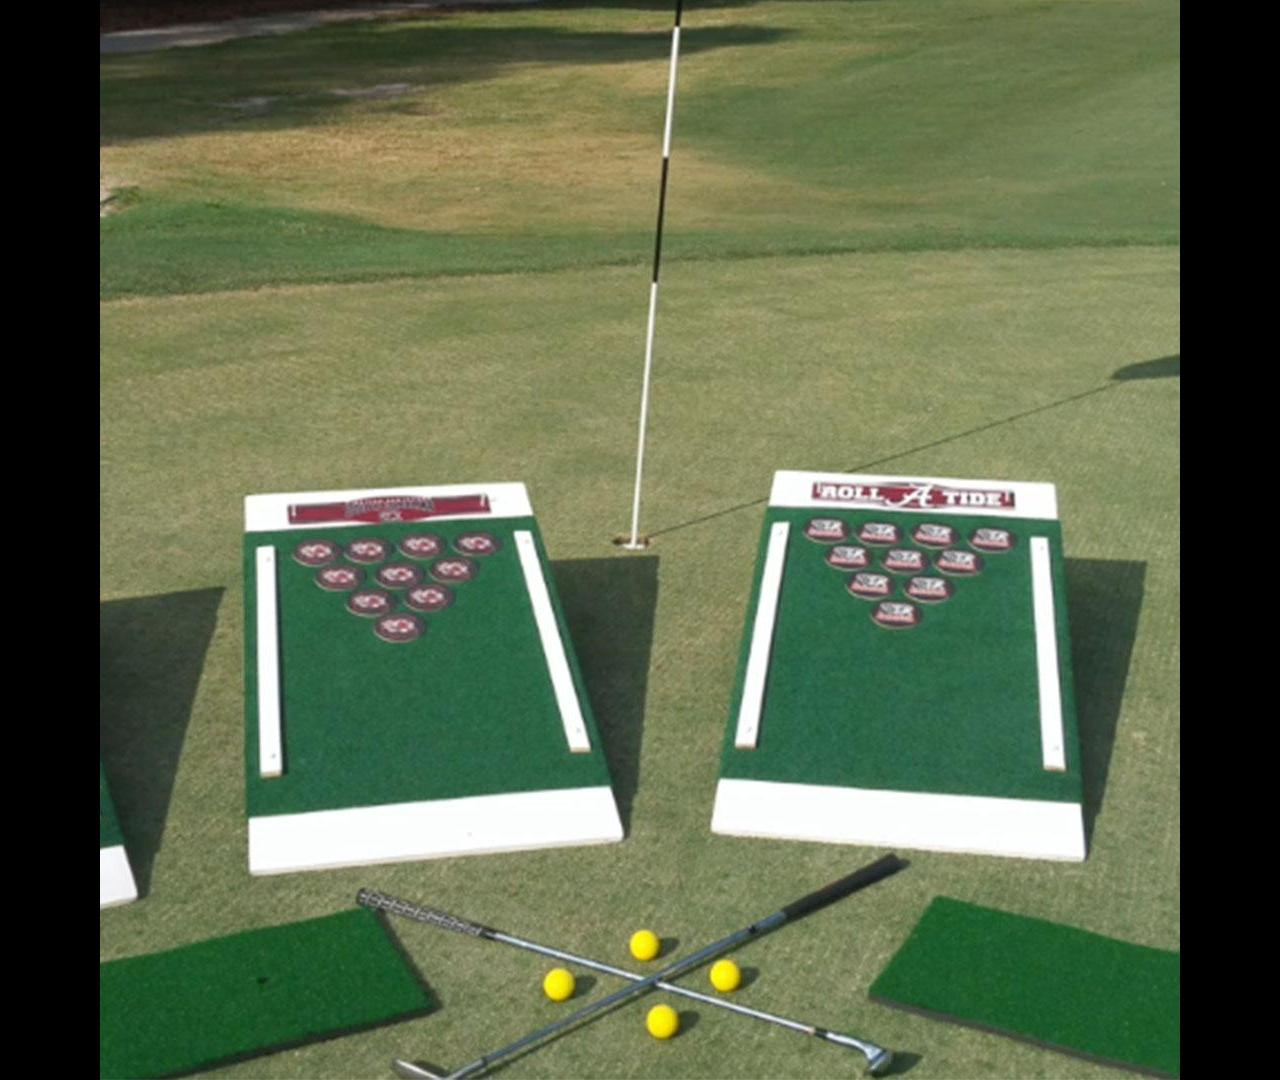 This game that combines beer pong and golf is perfect for your next tailgate